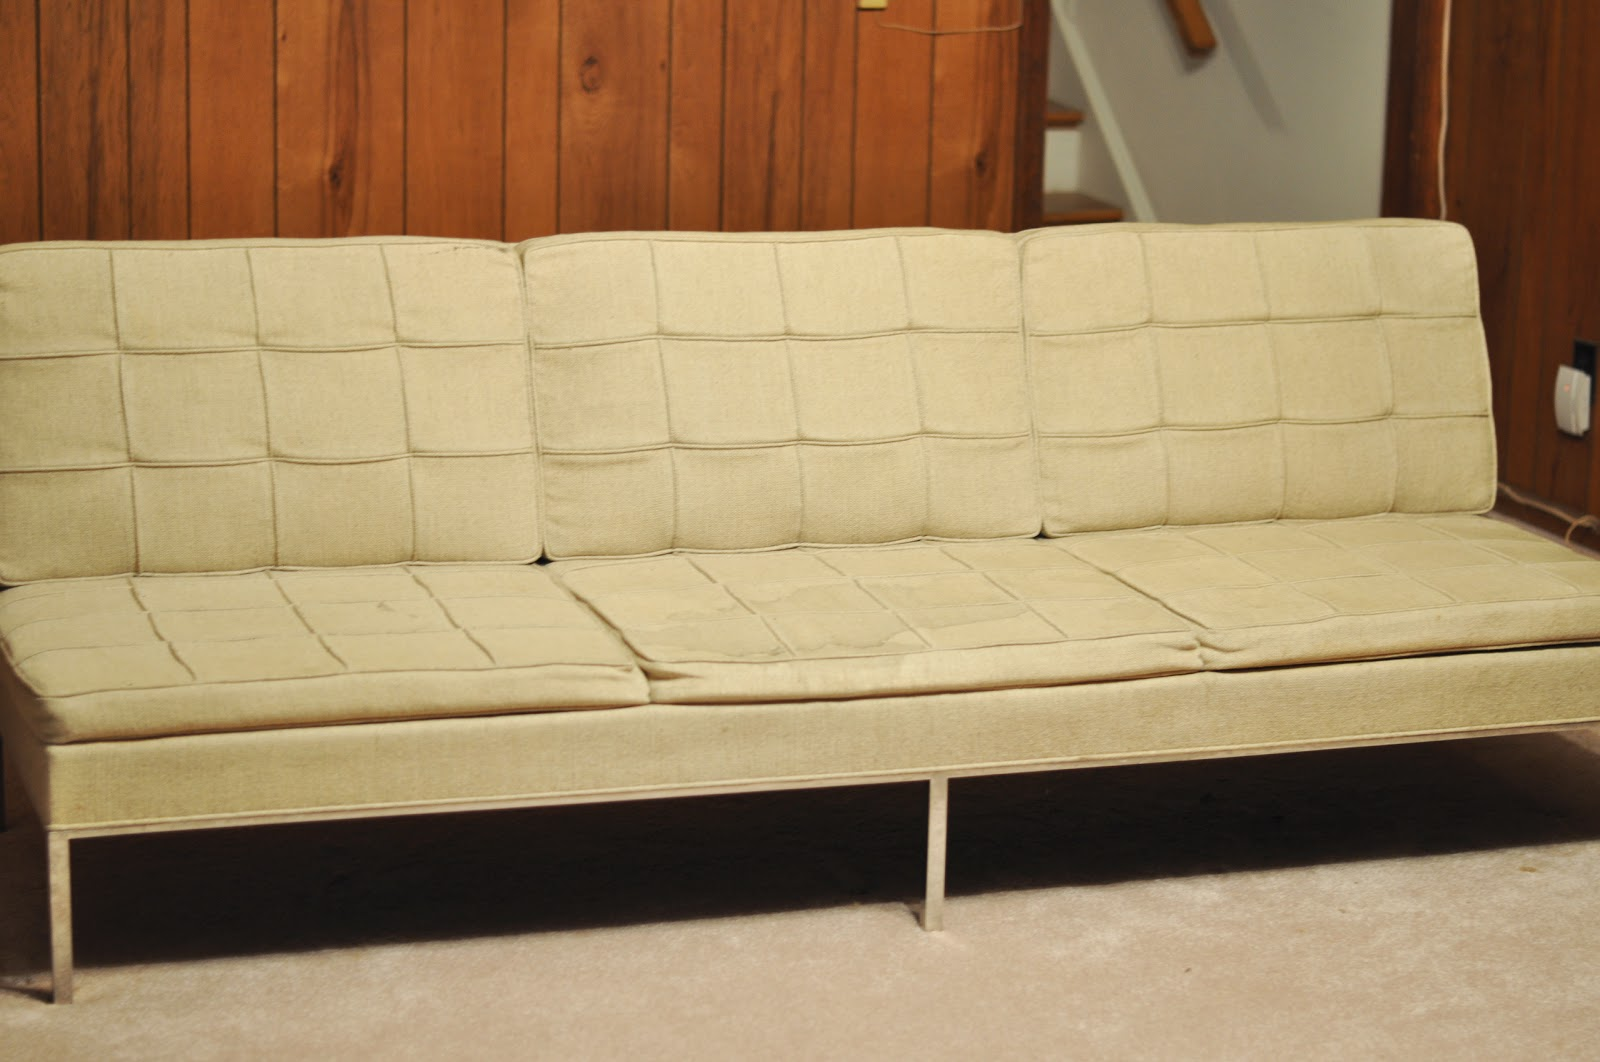 vintage knoll sofa vintage florence knoll parallel bar. Black Bedroom Furniture Sets. Home Design Ideas